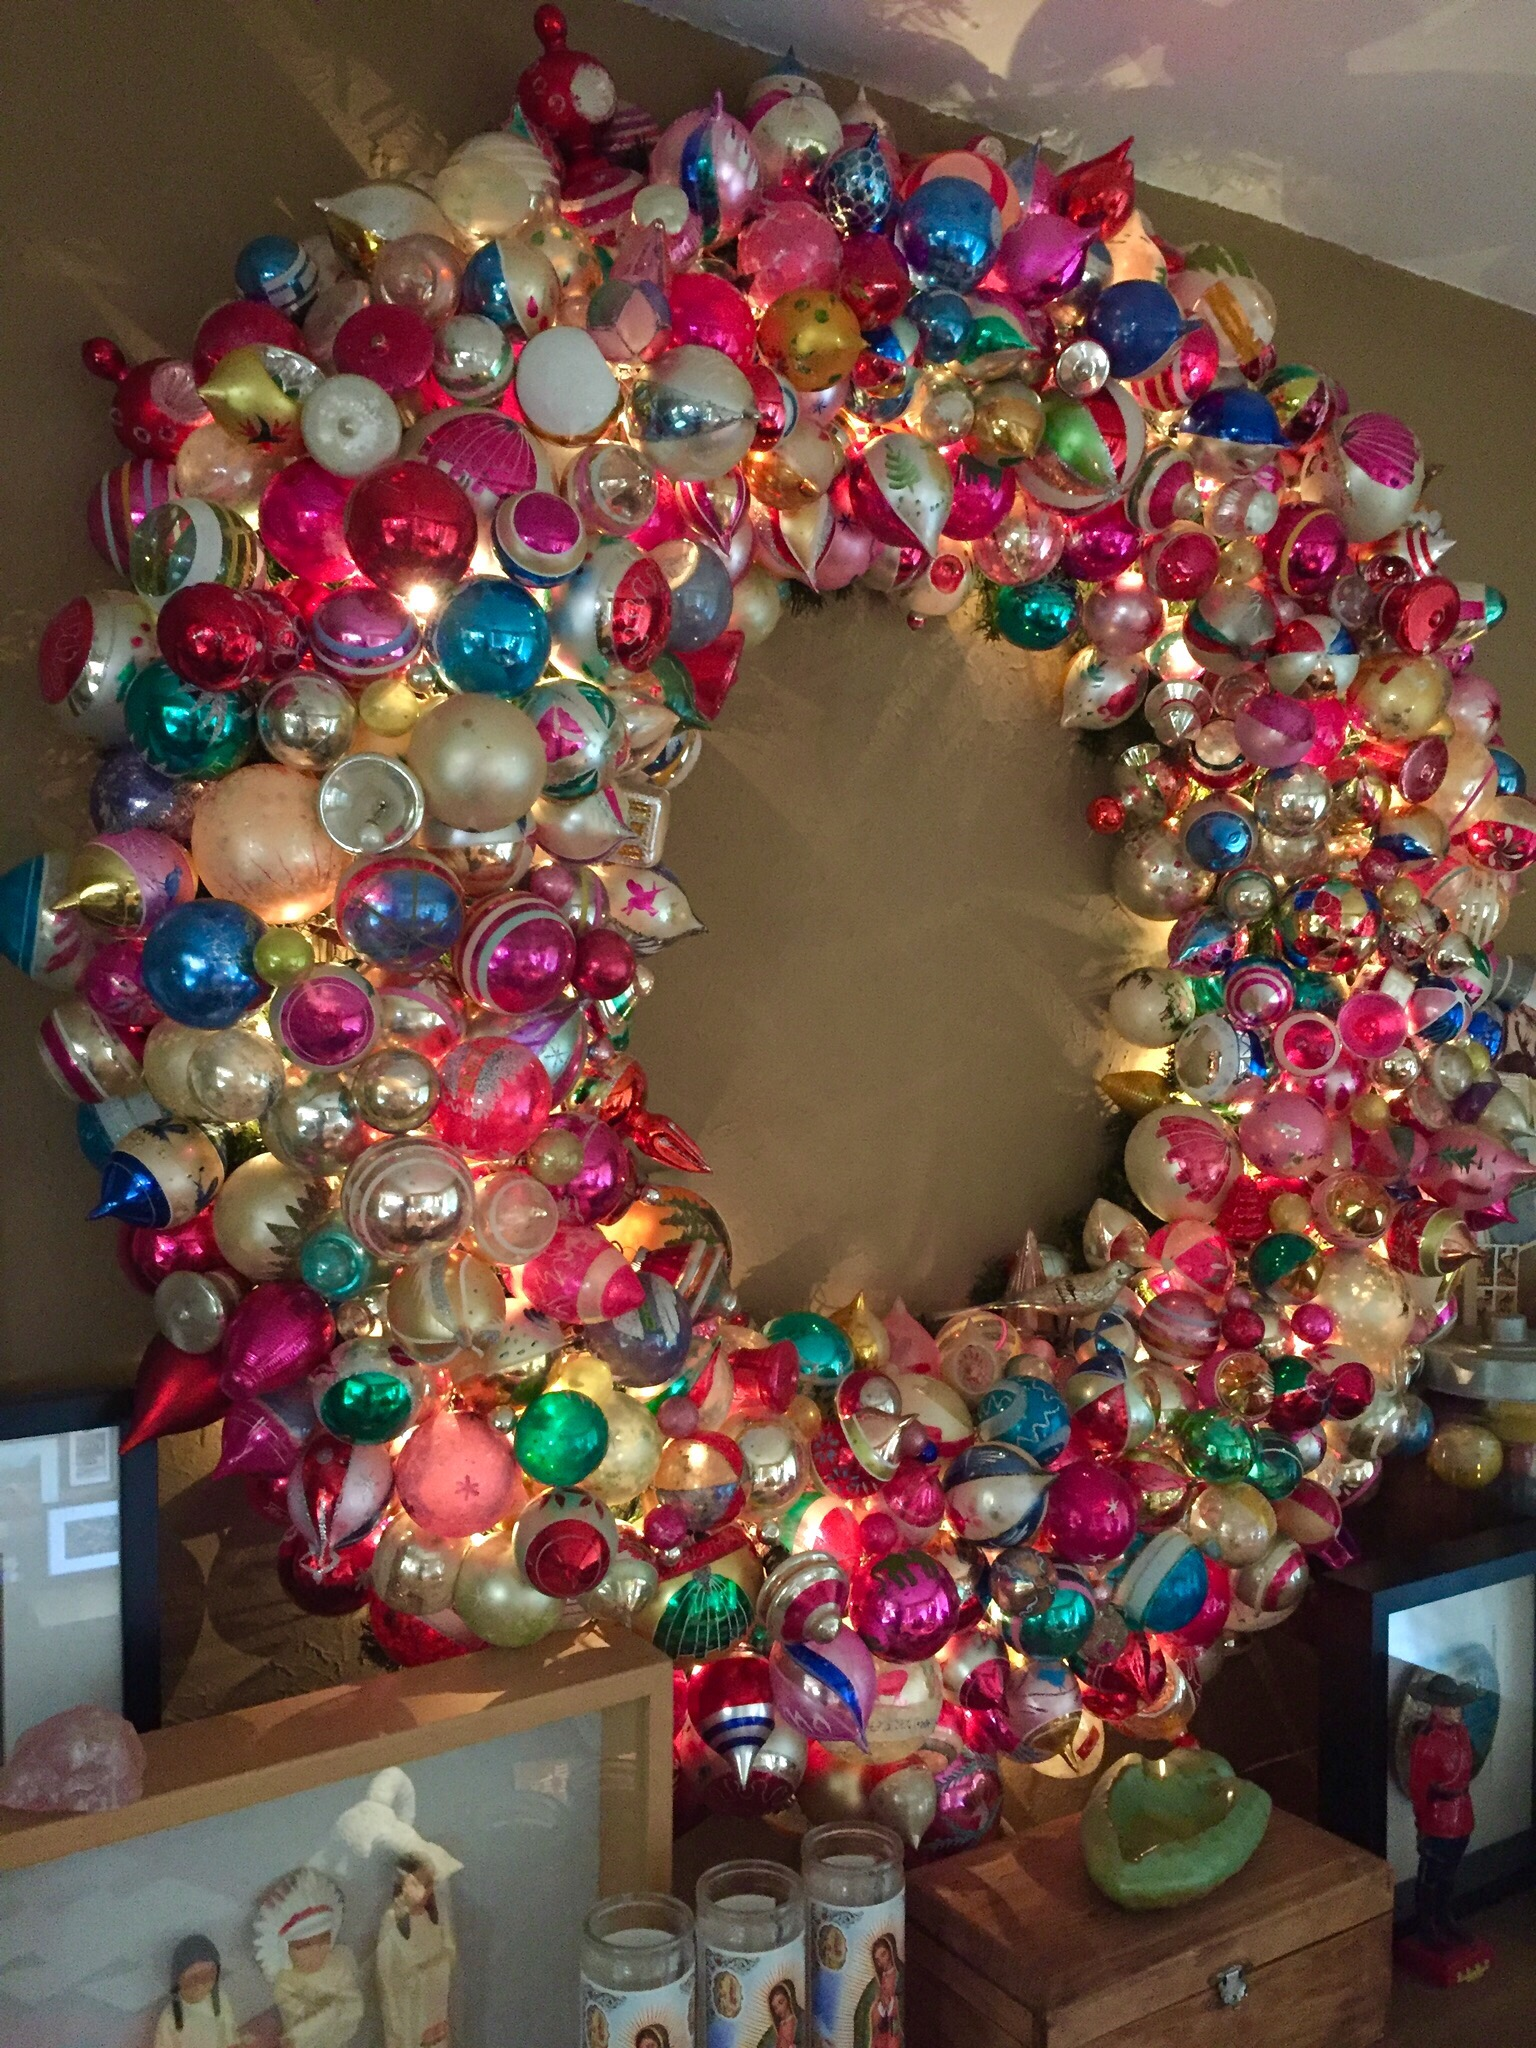 The Big Ornament Wreath for 2016 | THE CAVENDER DIARY